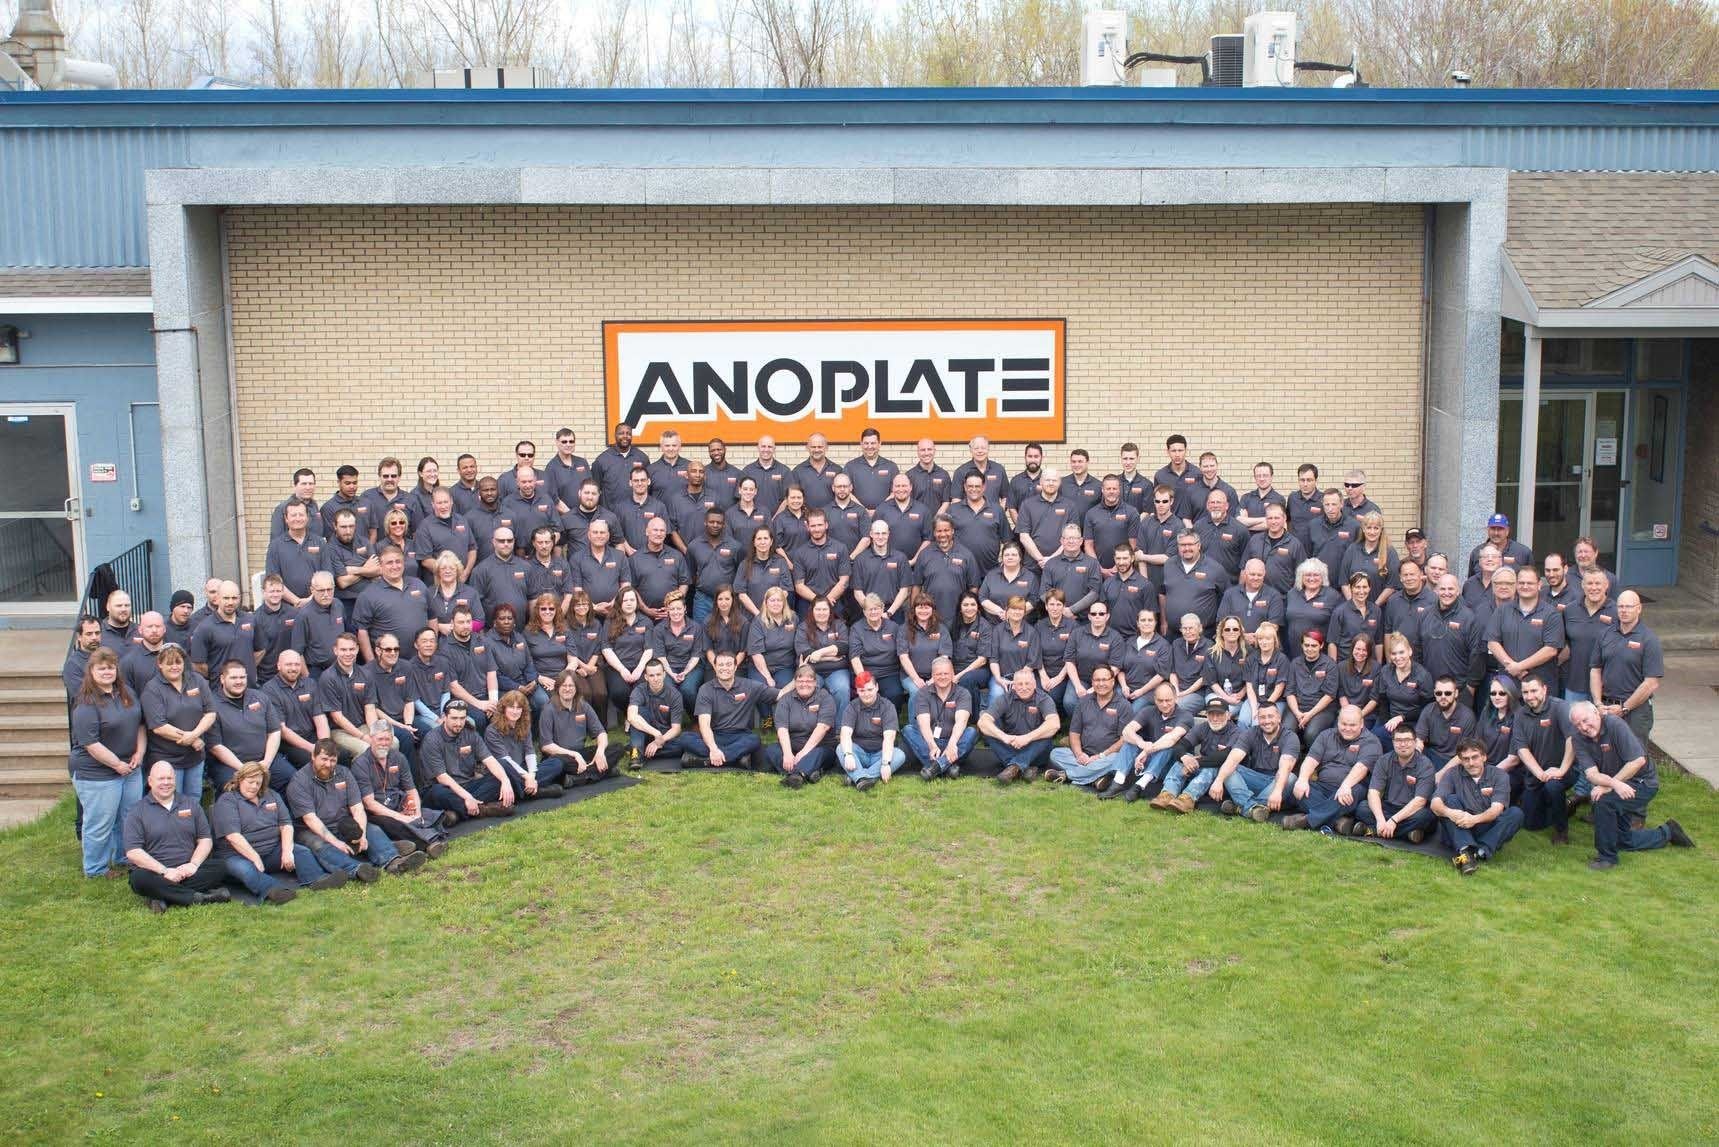 Anoplate team group photo